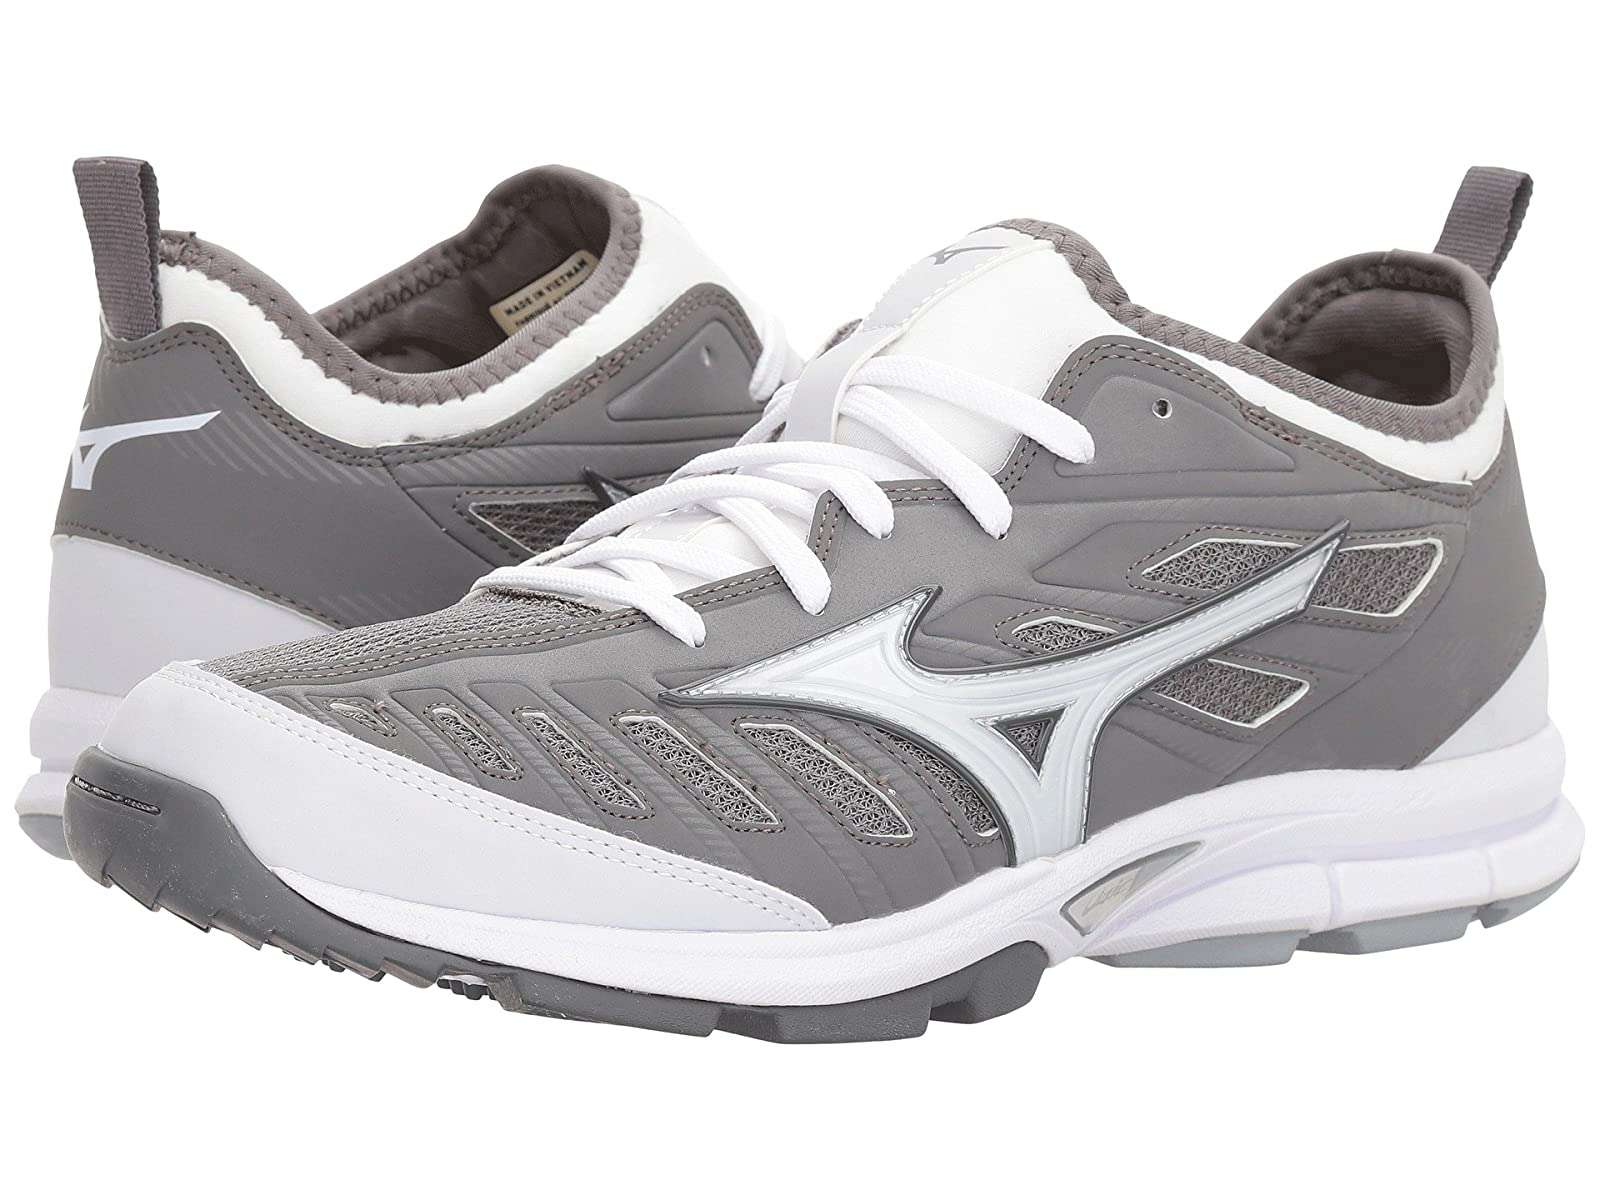 Mizuno Player's Trainer 2 BaseballAtmospheric grades have affordable shoes